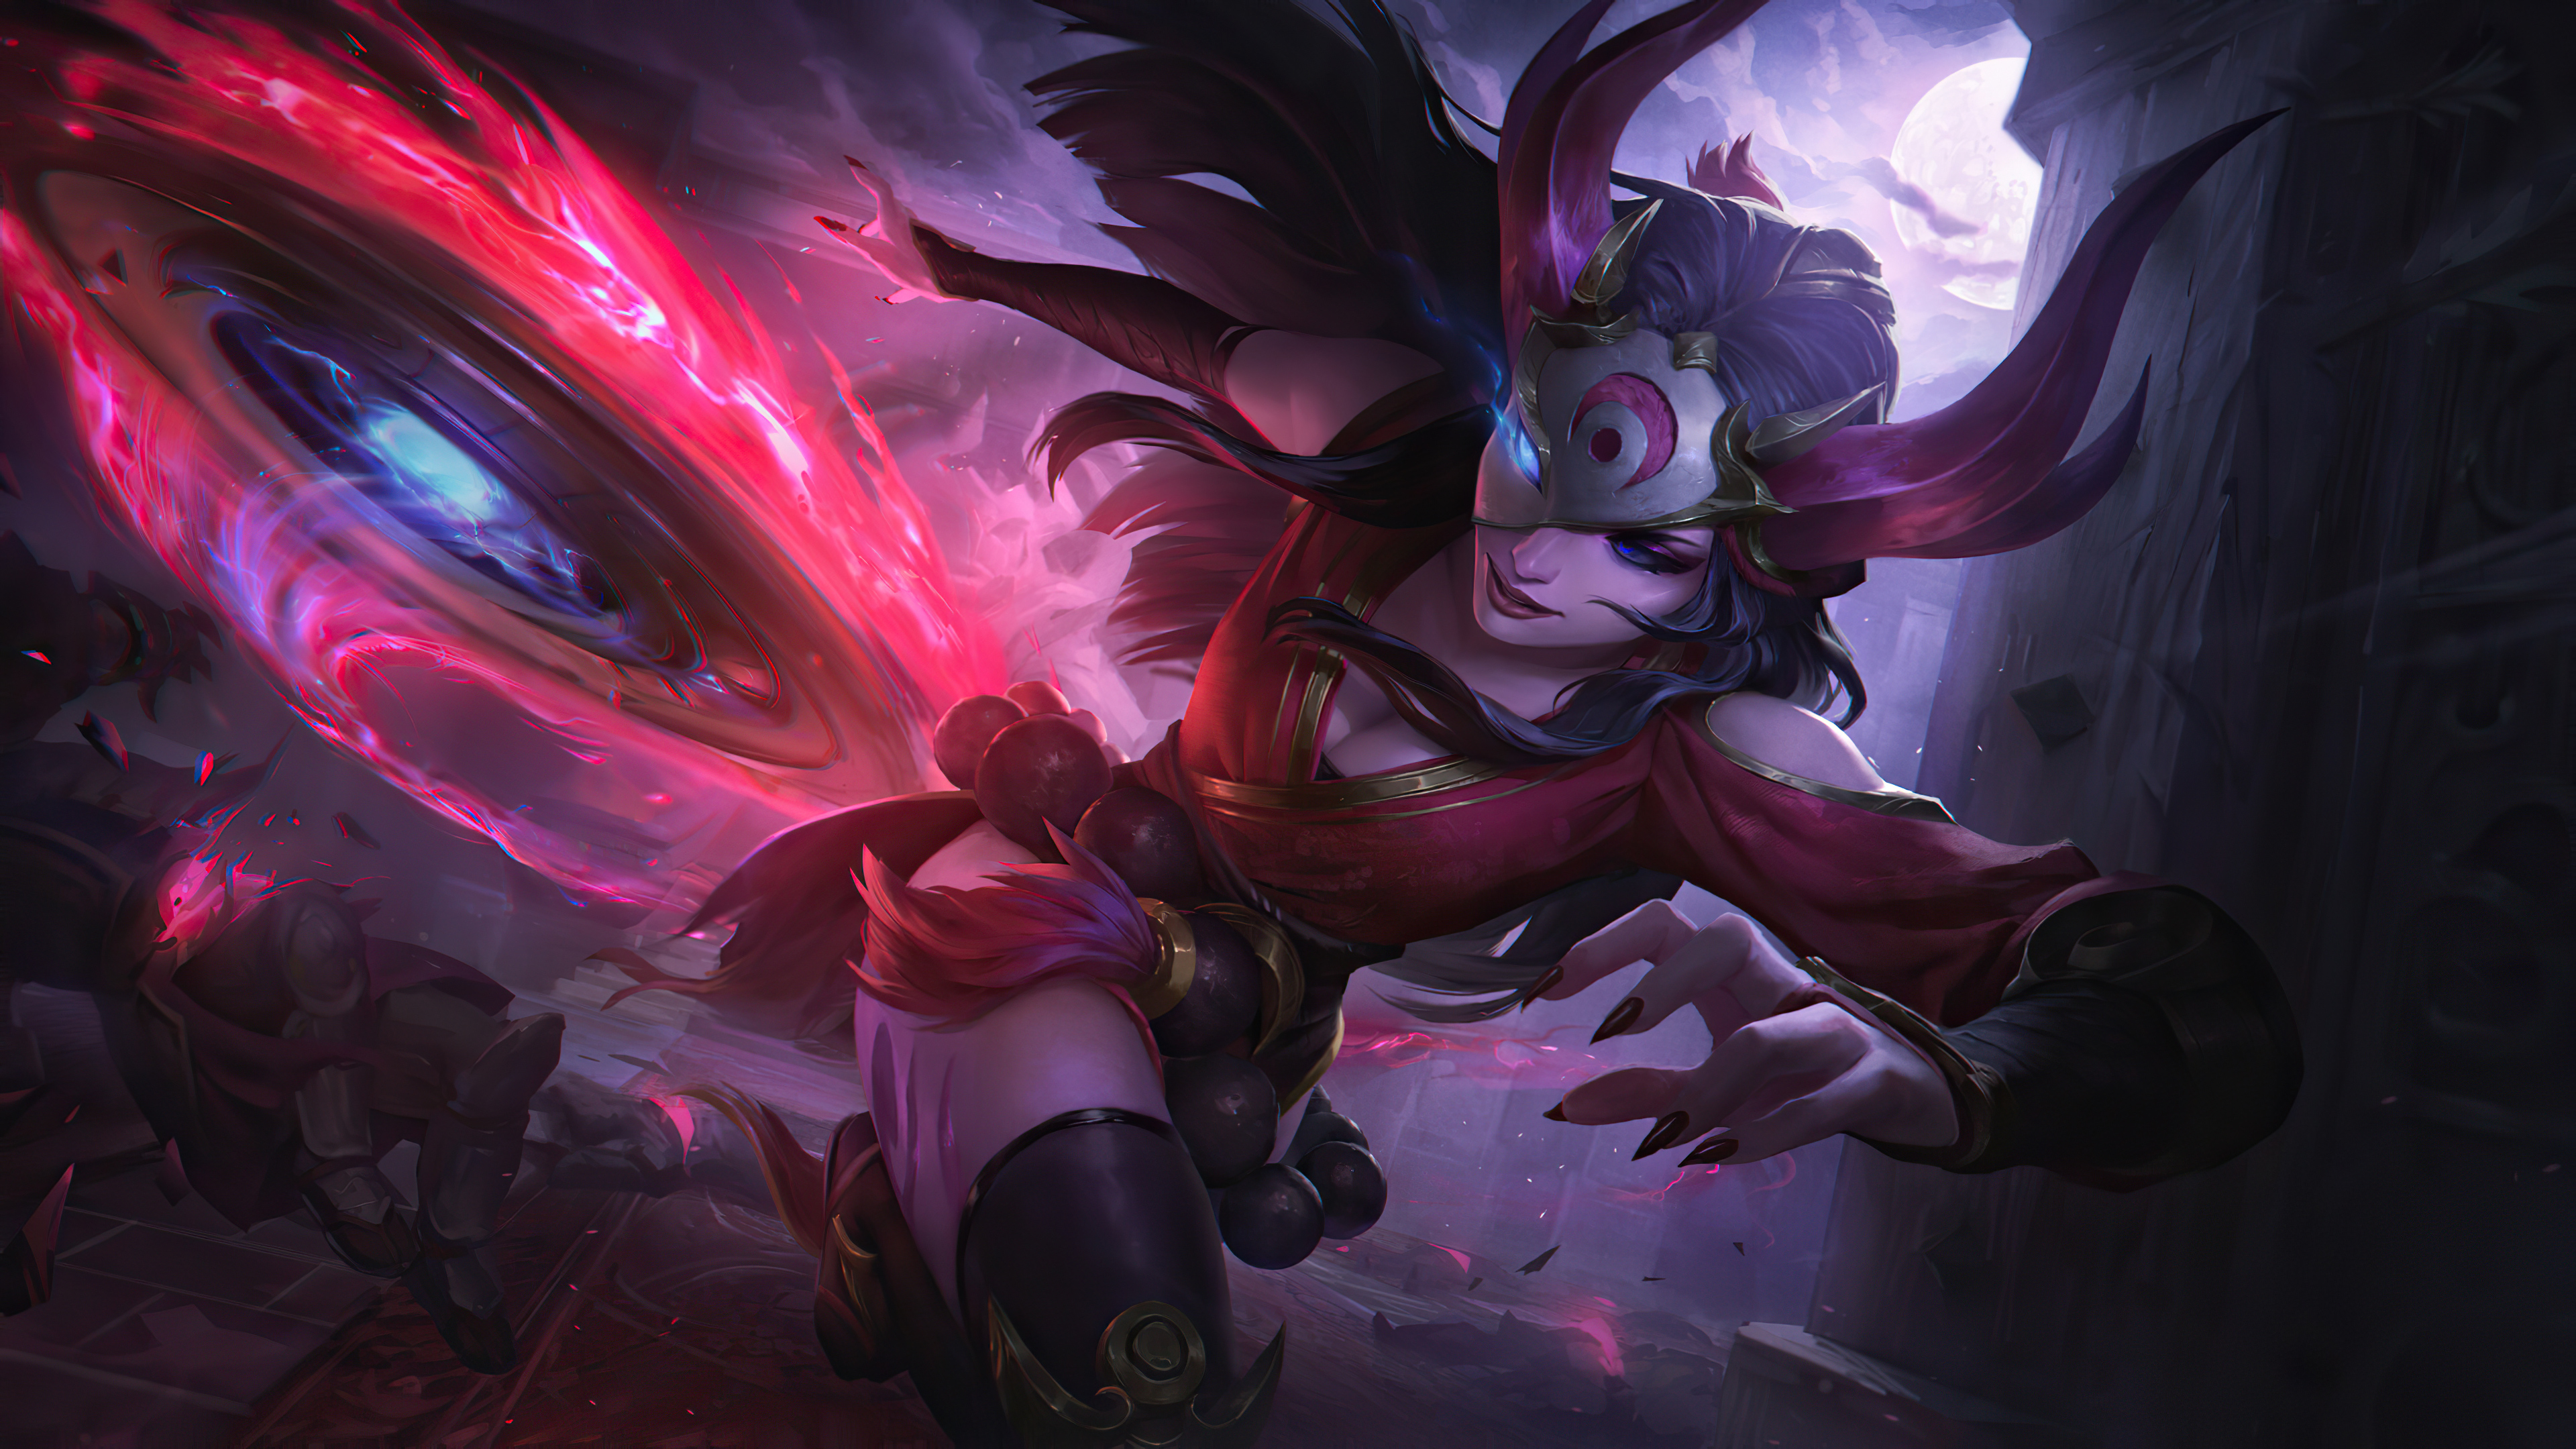 3840x2160 Blood Moon Sivir League Of Legends 4k Hd 4k Wallpapers Images Backgrounds Photos And Pictures